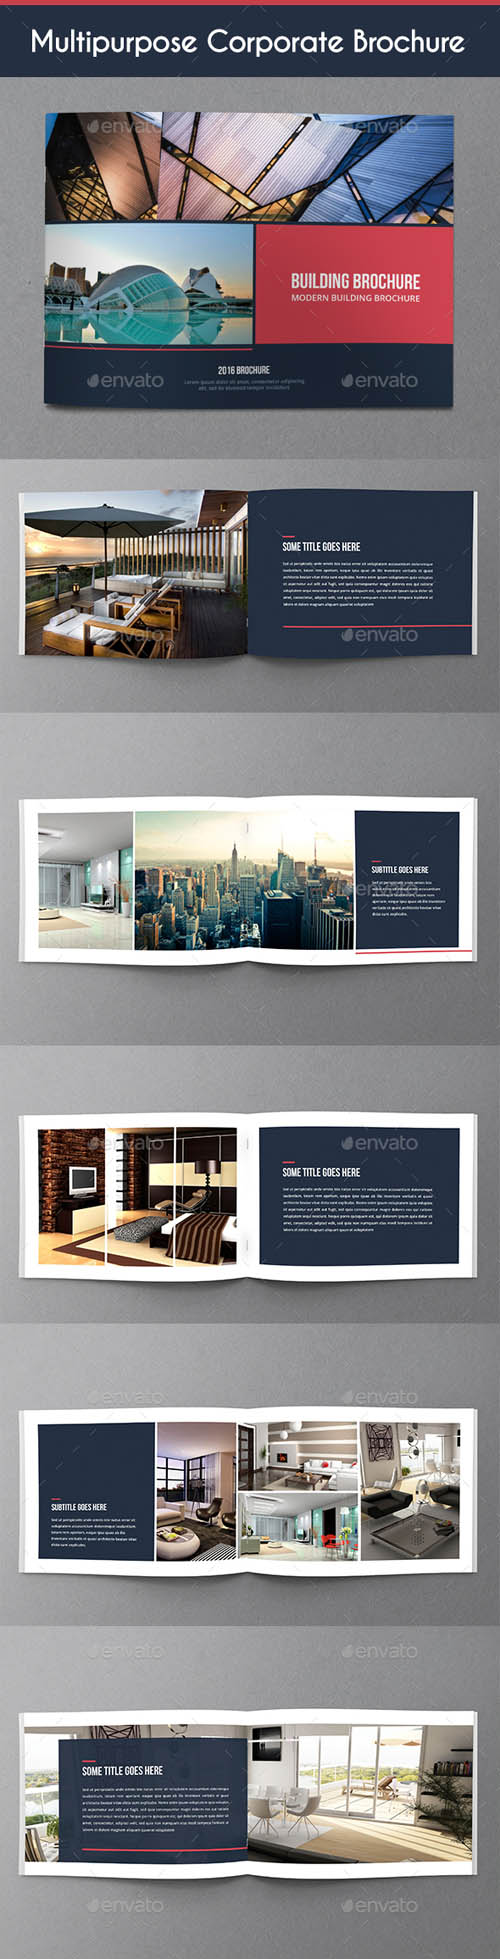 Multipurpose Corporate Brochure 18628652